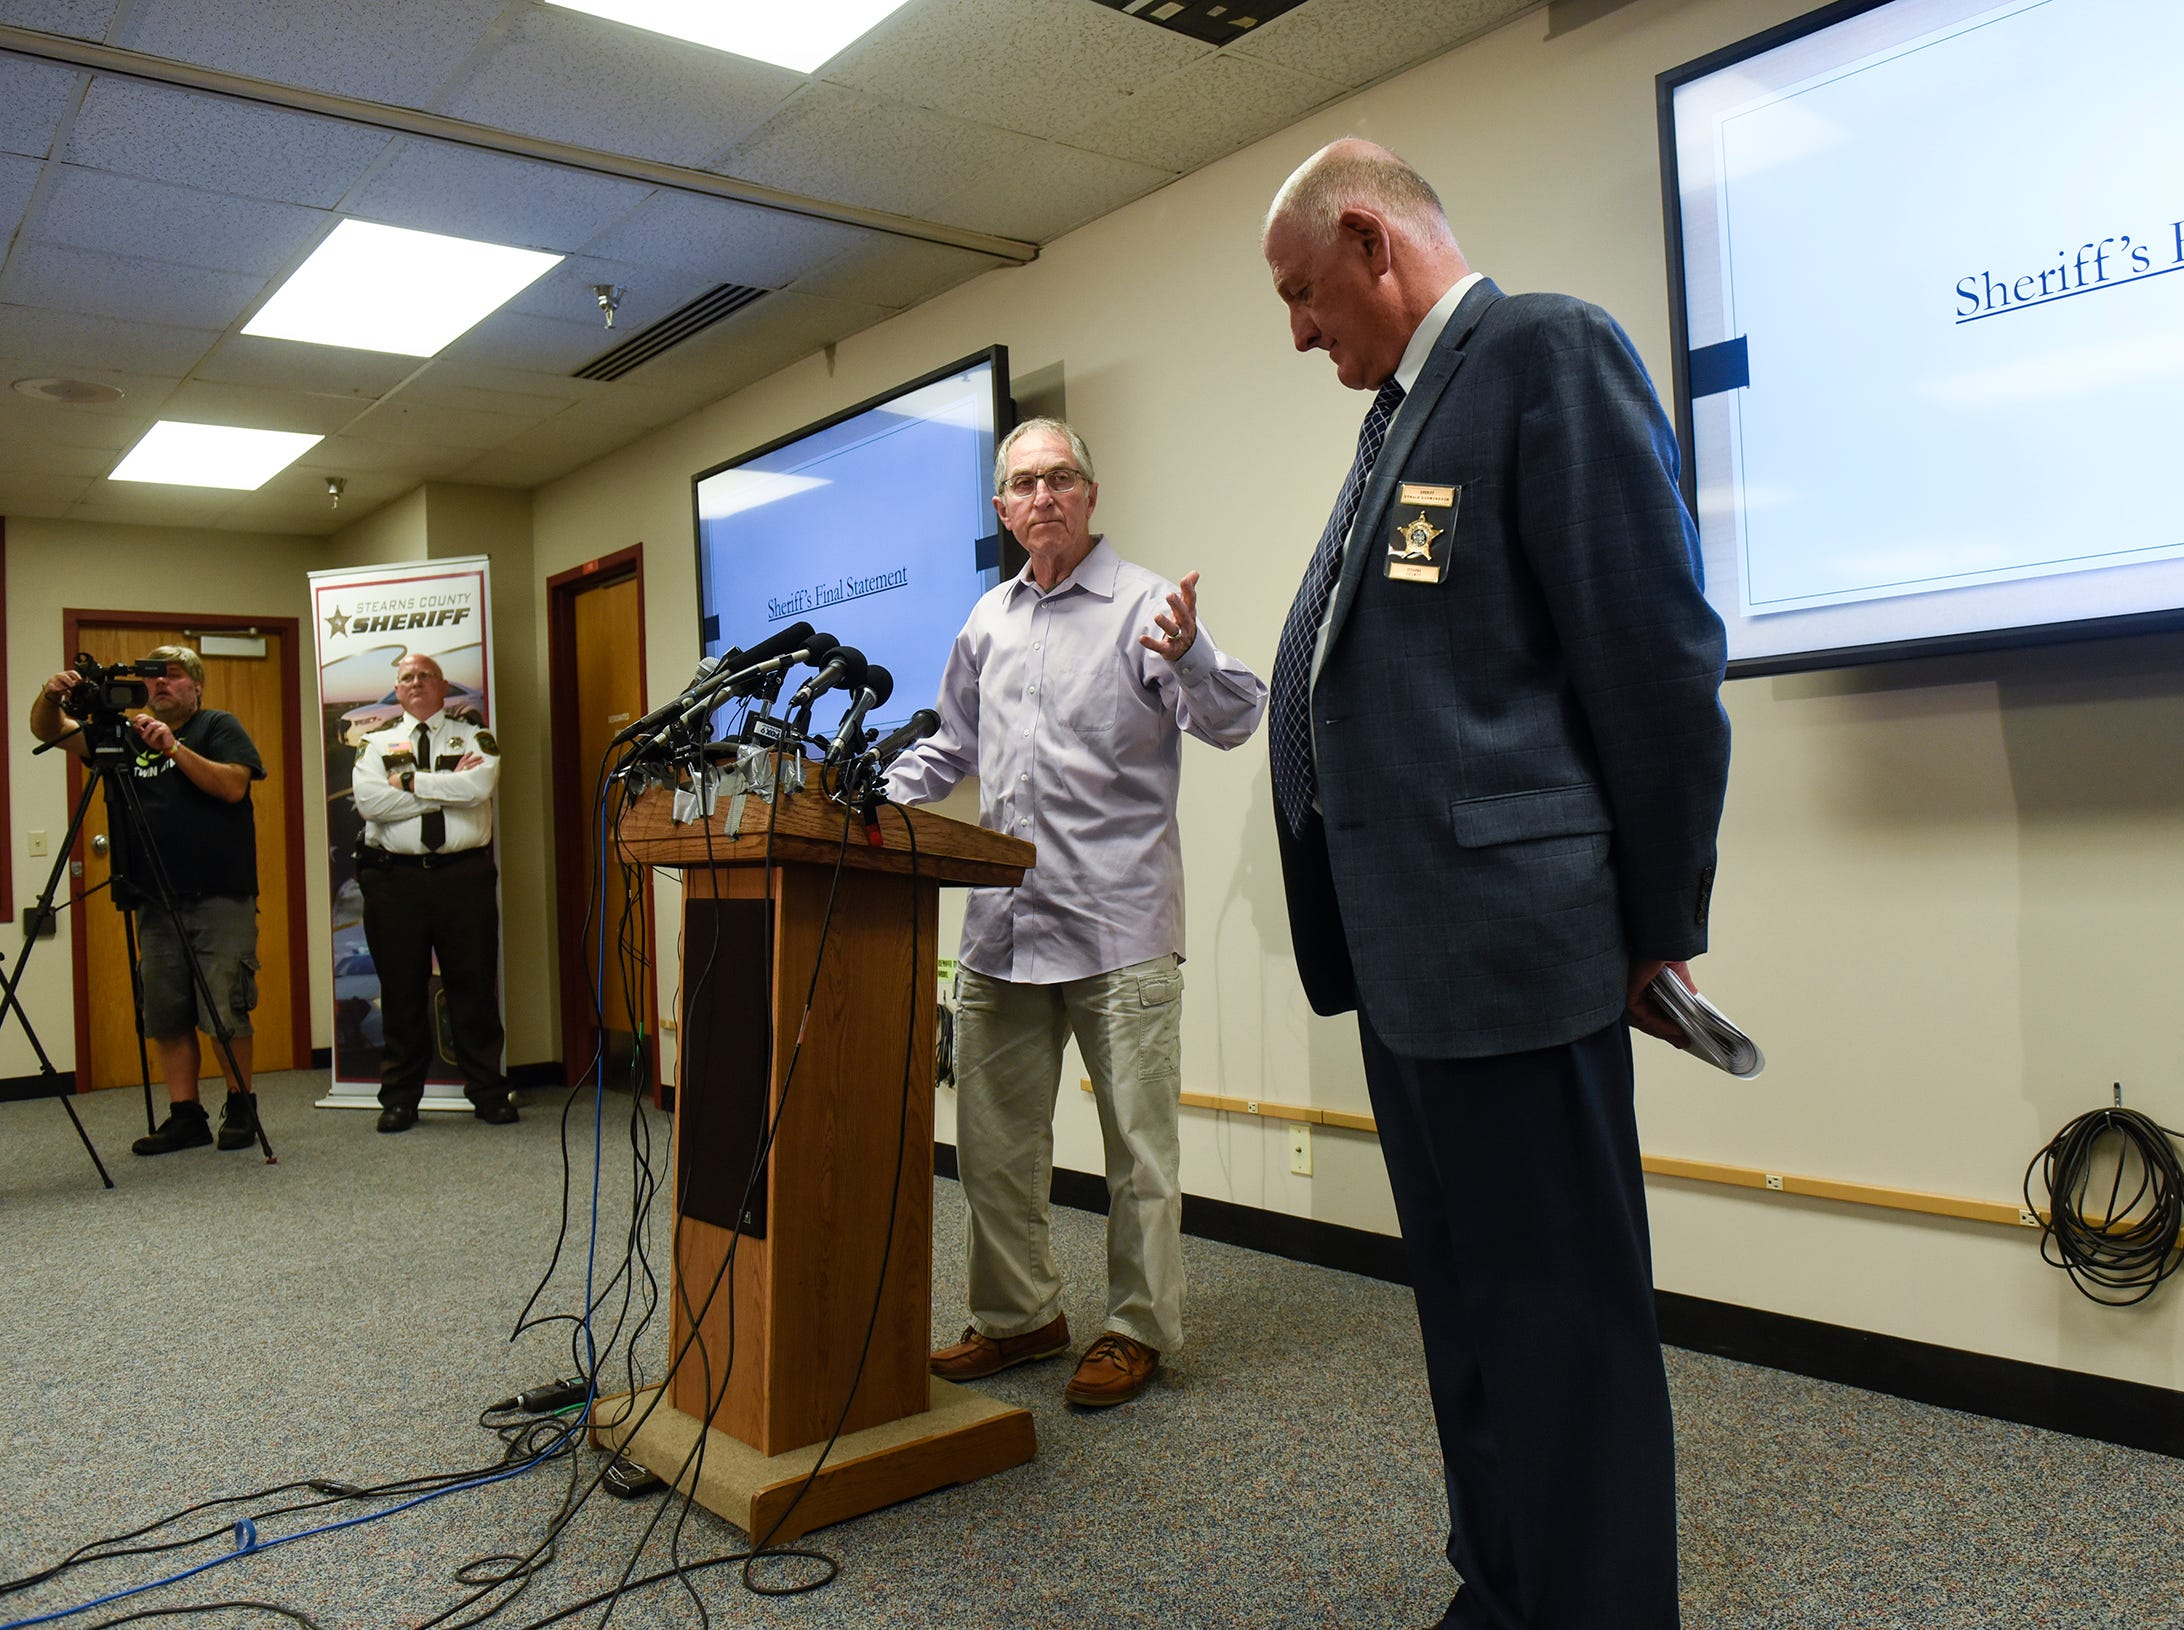 Former FBI Investigator Al Garber gives his views on statements by Stearns County Sheriff Don Gudmundson following a press conference Thursday, Sept. 20, at the Stearns County Law Enforcement Center in St. Cloud.